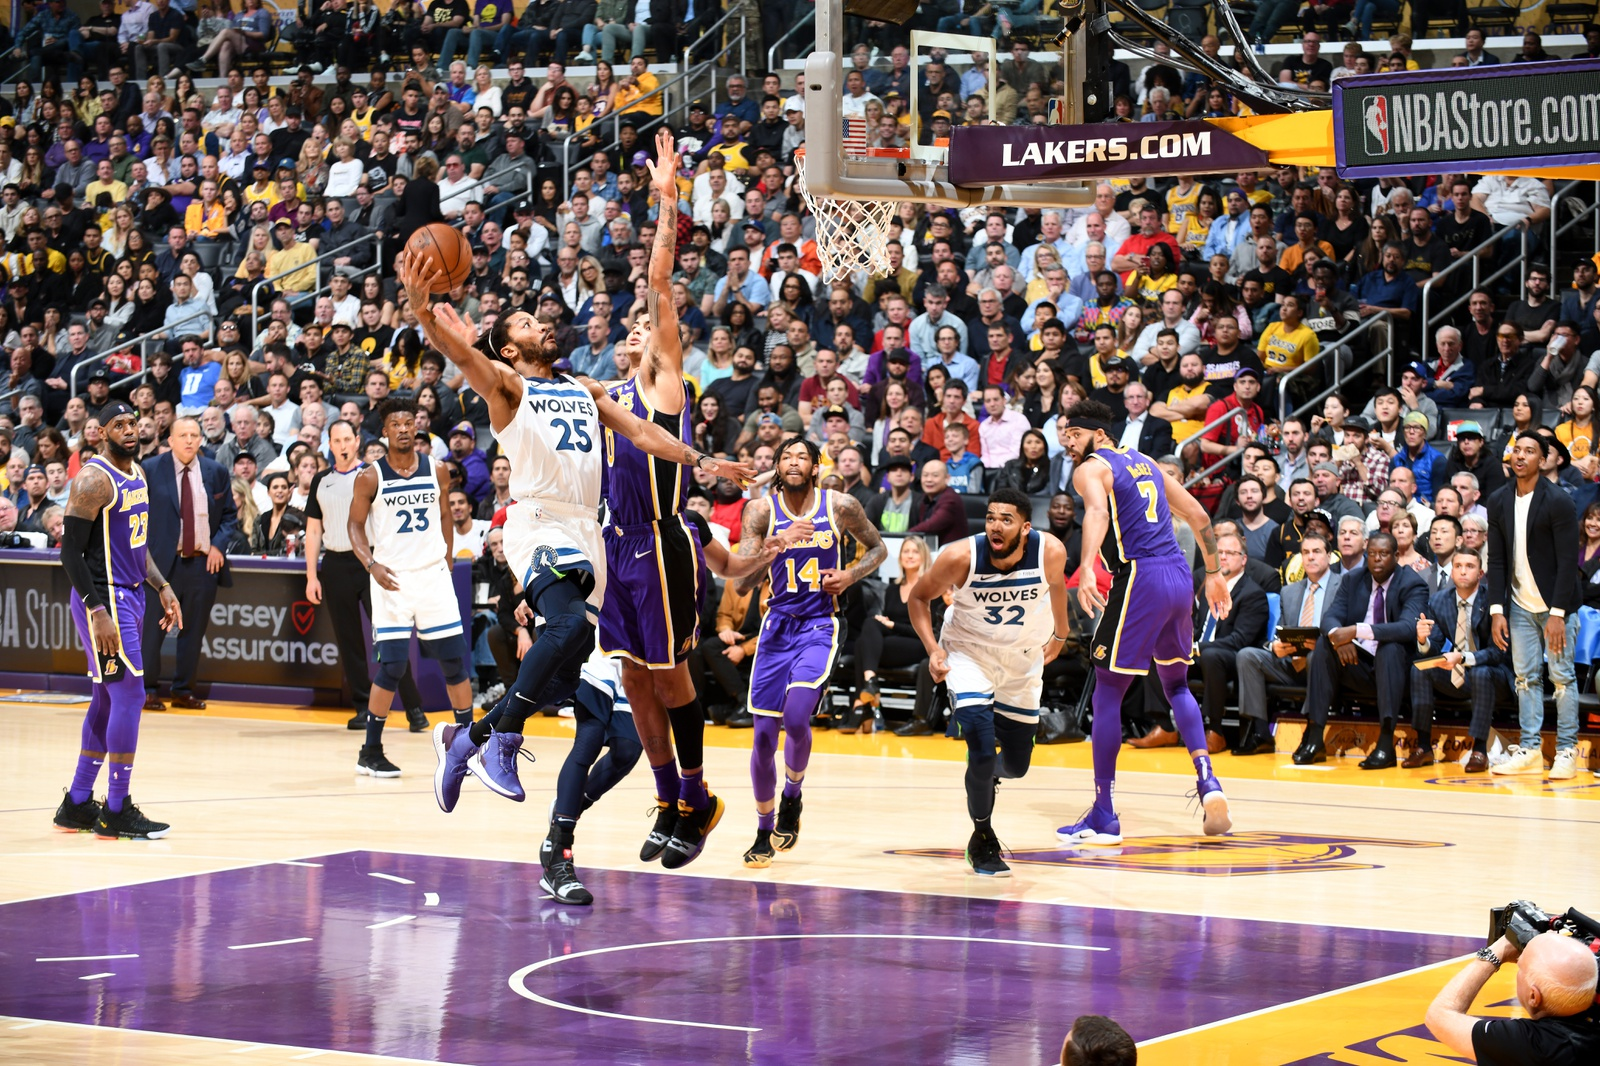 Derrick Rose #25 of the Minnesota Timberwolves shoots the ball against the Los Angeles Lakers on November 7, 2018 at STAPLES Center in Los Angeles, California.